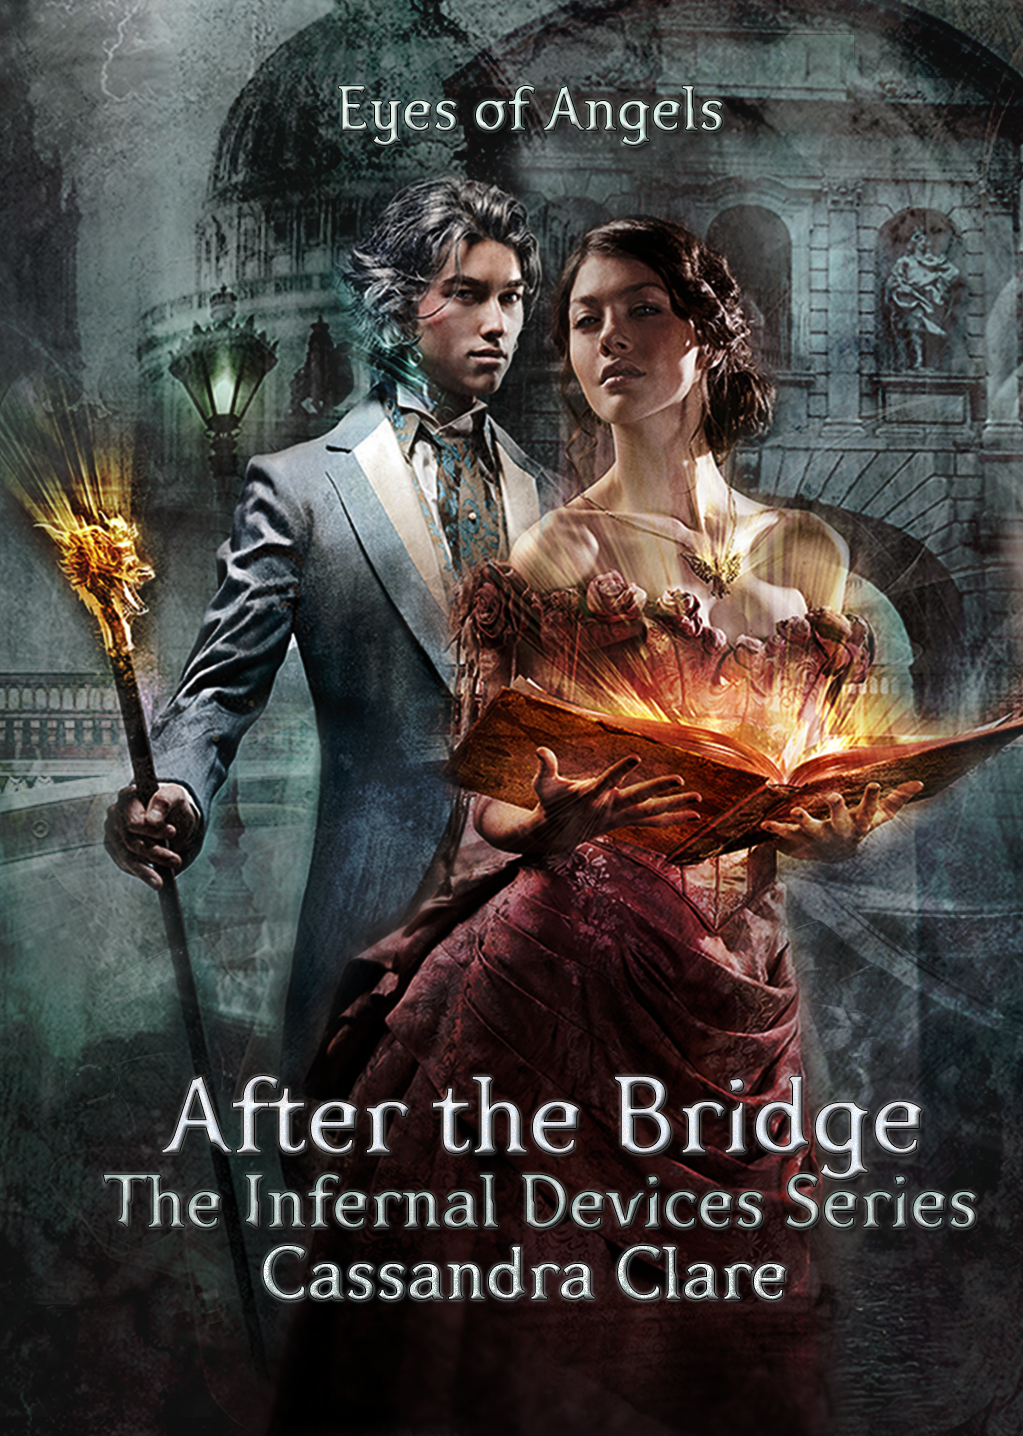 INFERNAL DEVICES SERIES EBOOK DOWNLOAD